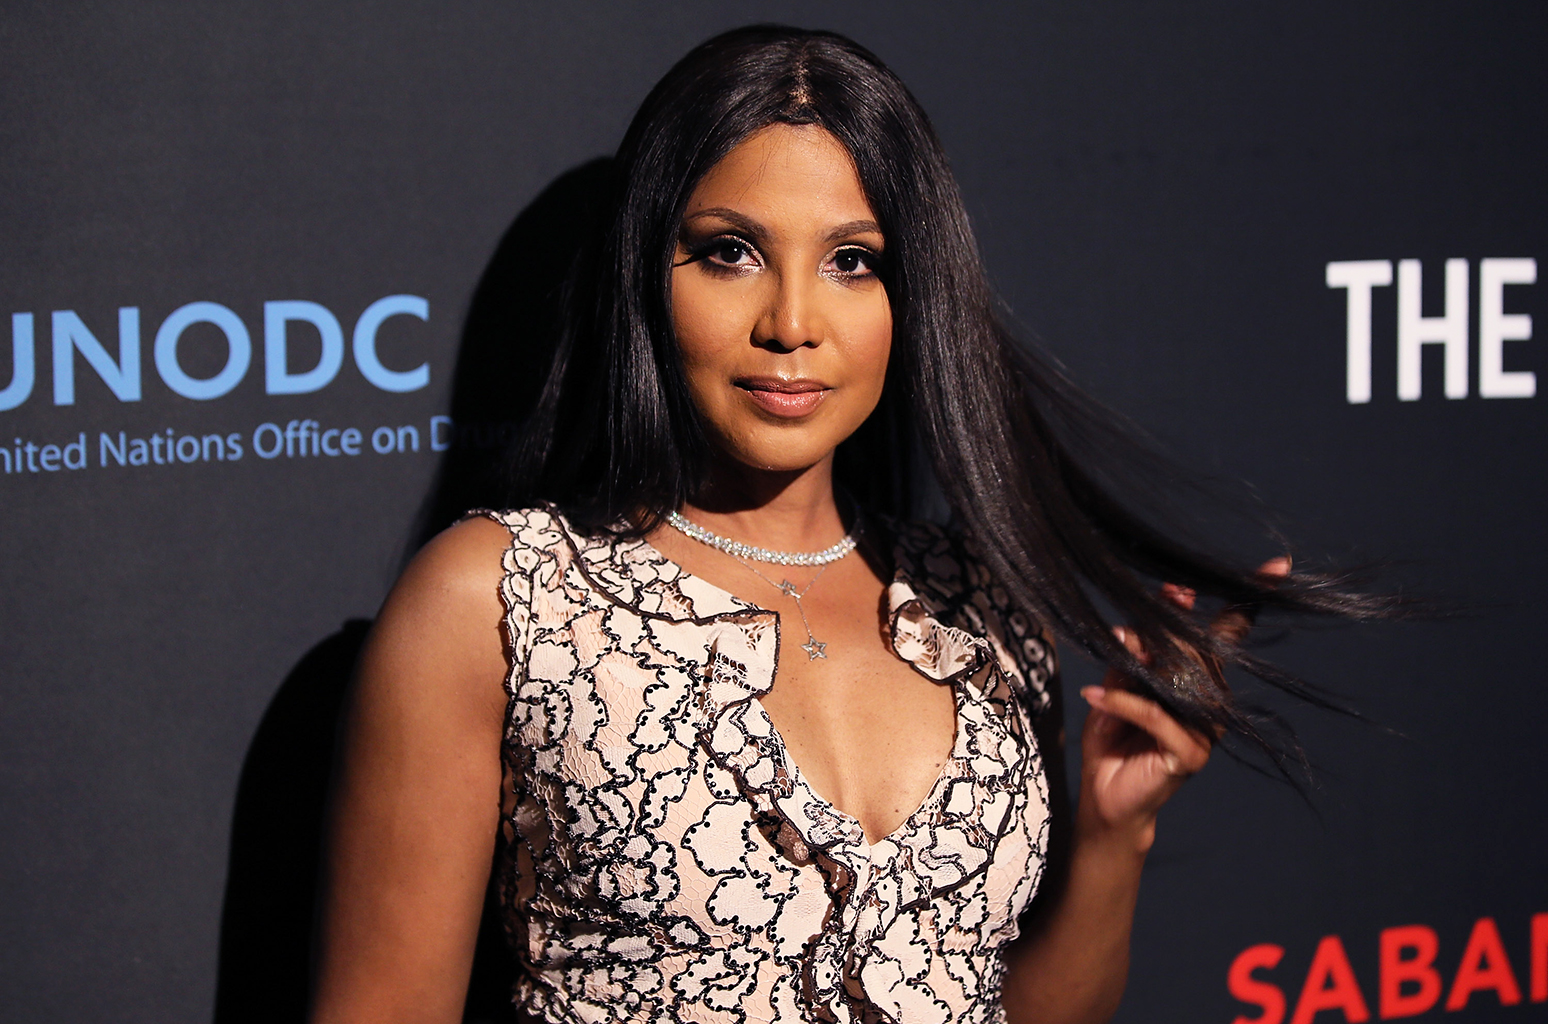 Toni Braxton Hangs Out In Beautiful Miami And Shares Her Goals For 2020 In This Video